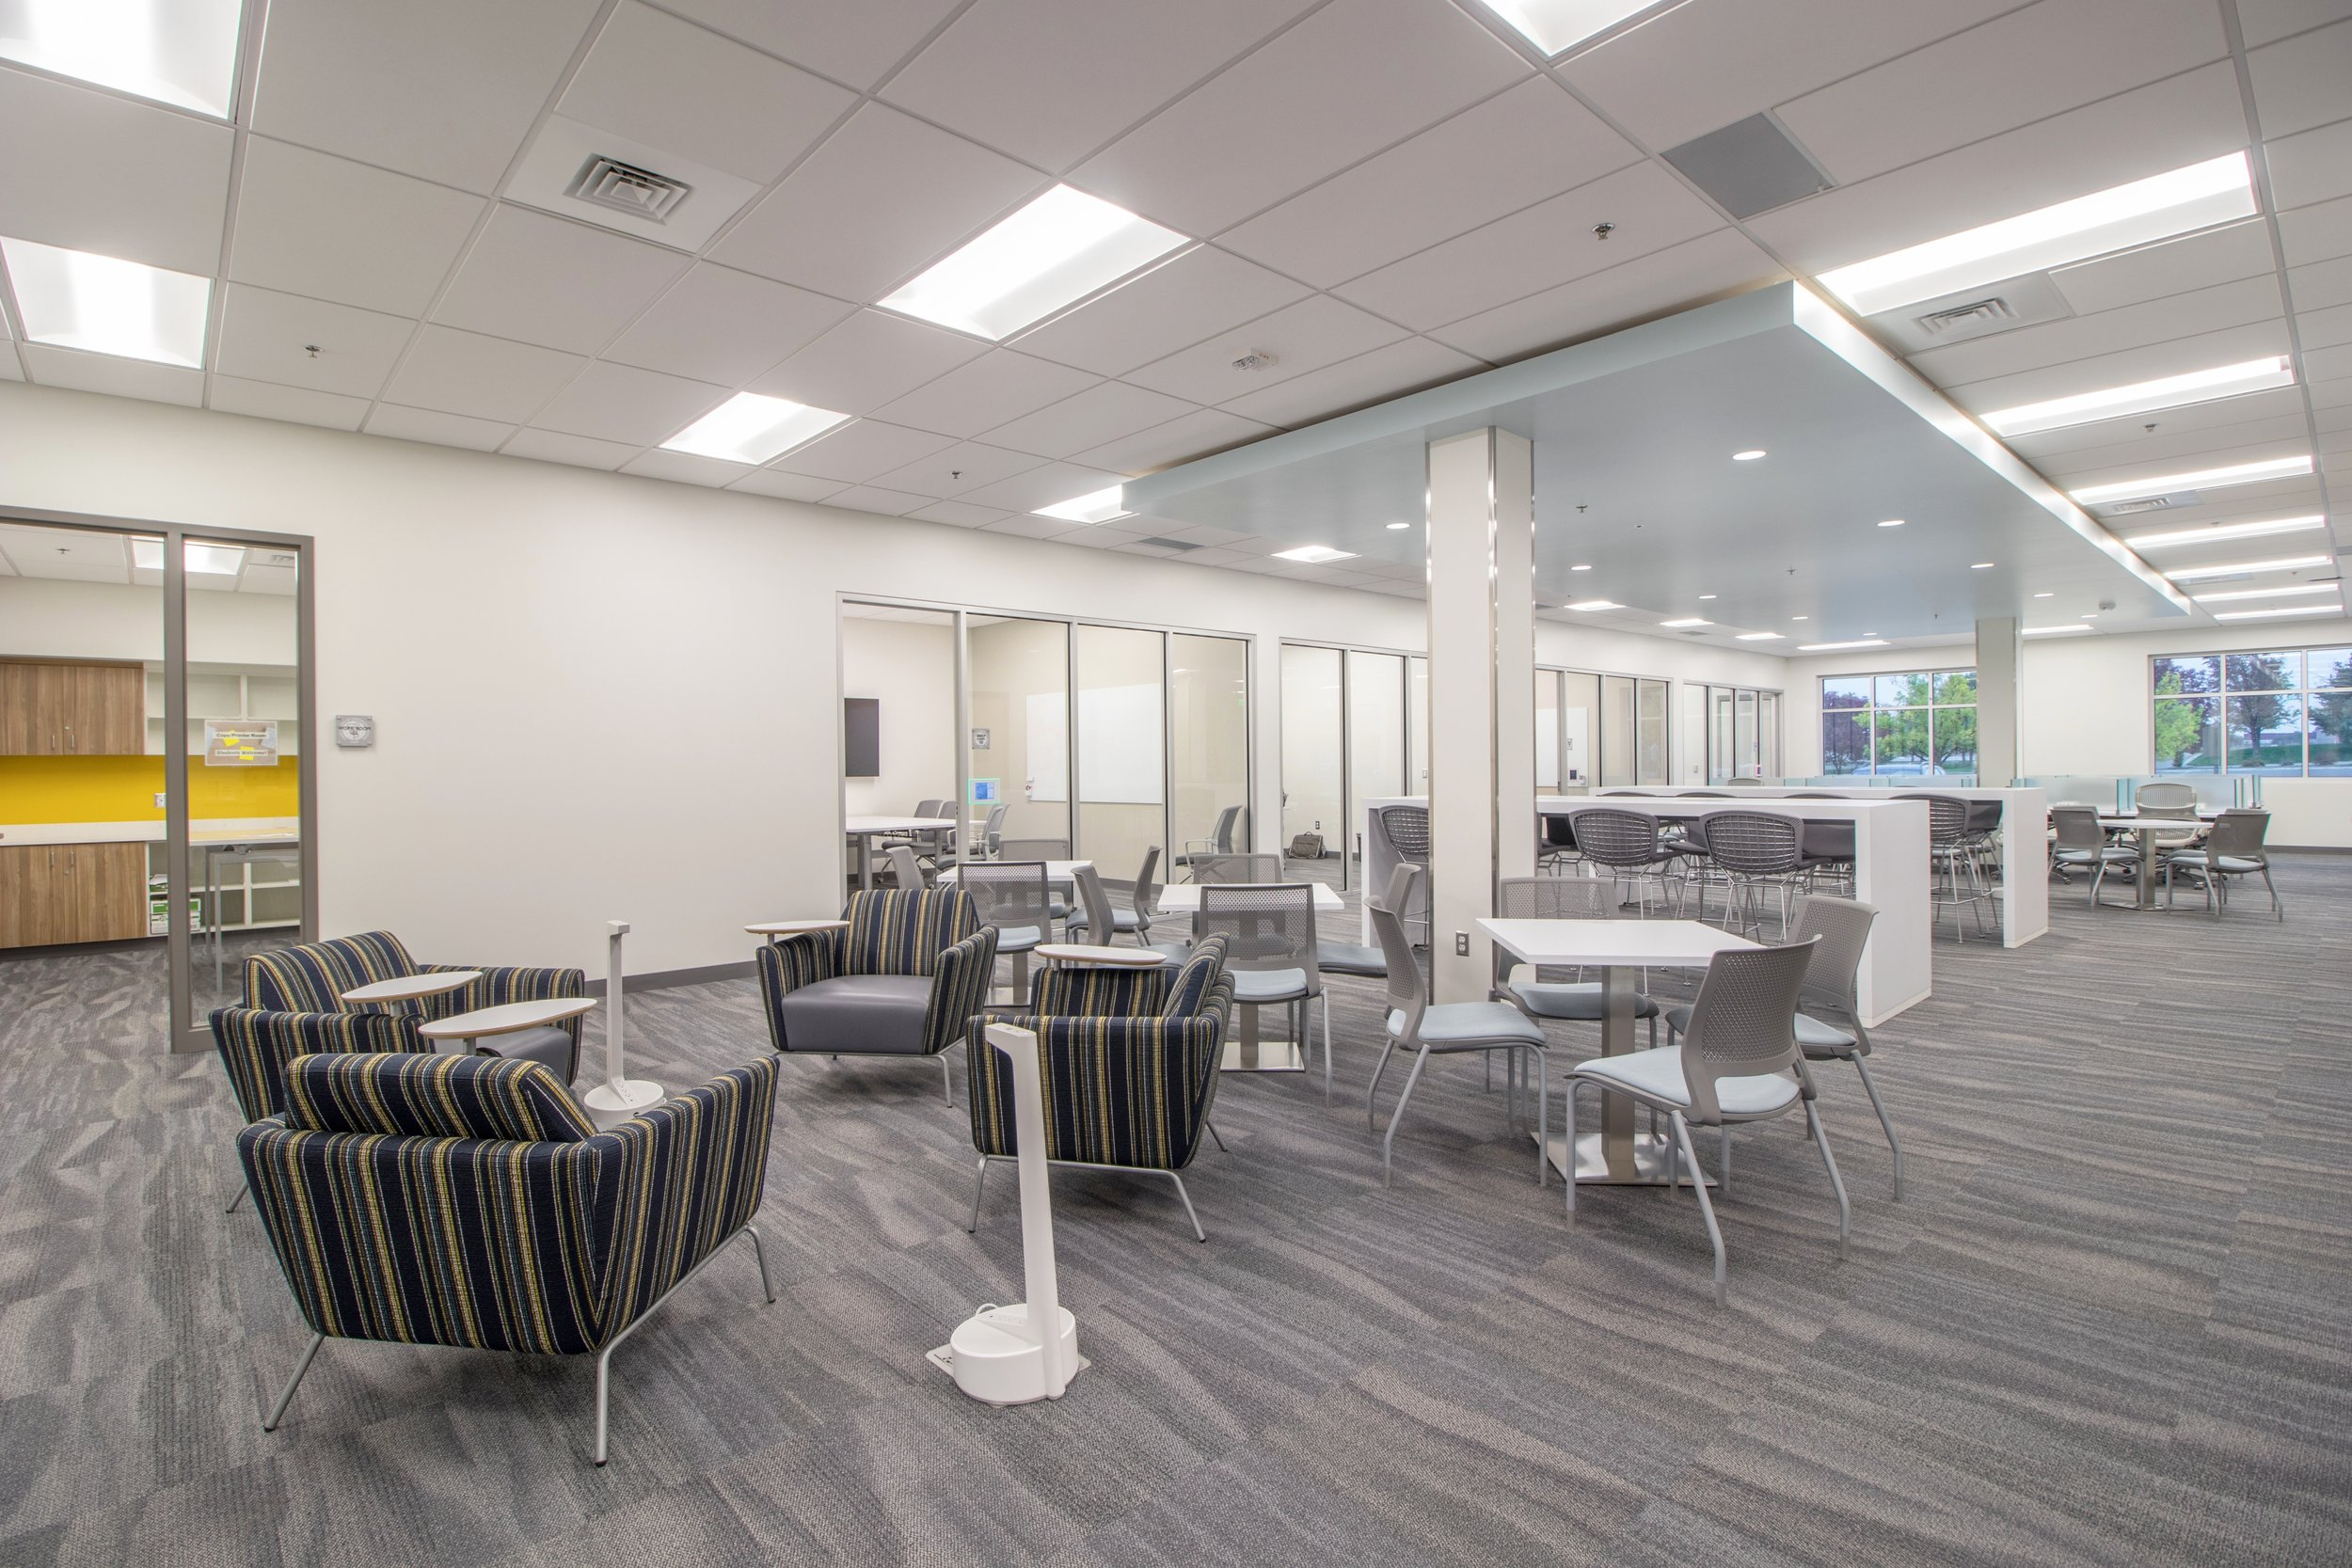 Library  - 2413 sq ft with a mix of high-top seating, study carrels, small table and soft seating for 76 students. In addition, there are 4 group study rooms each with seating for 9 students making a total for the library of 122.